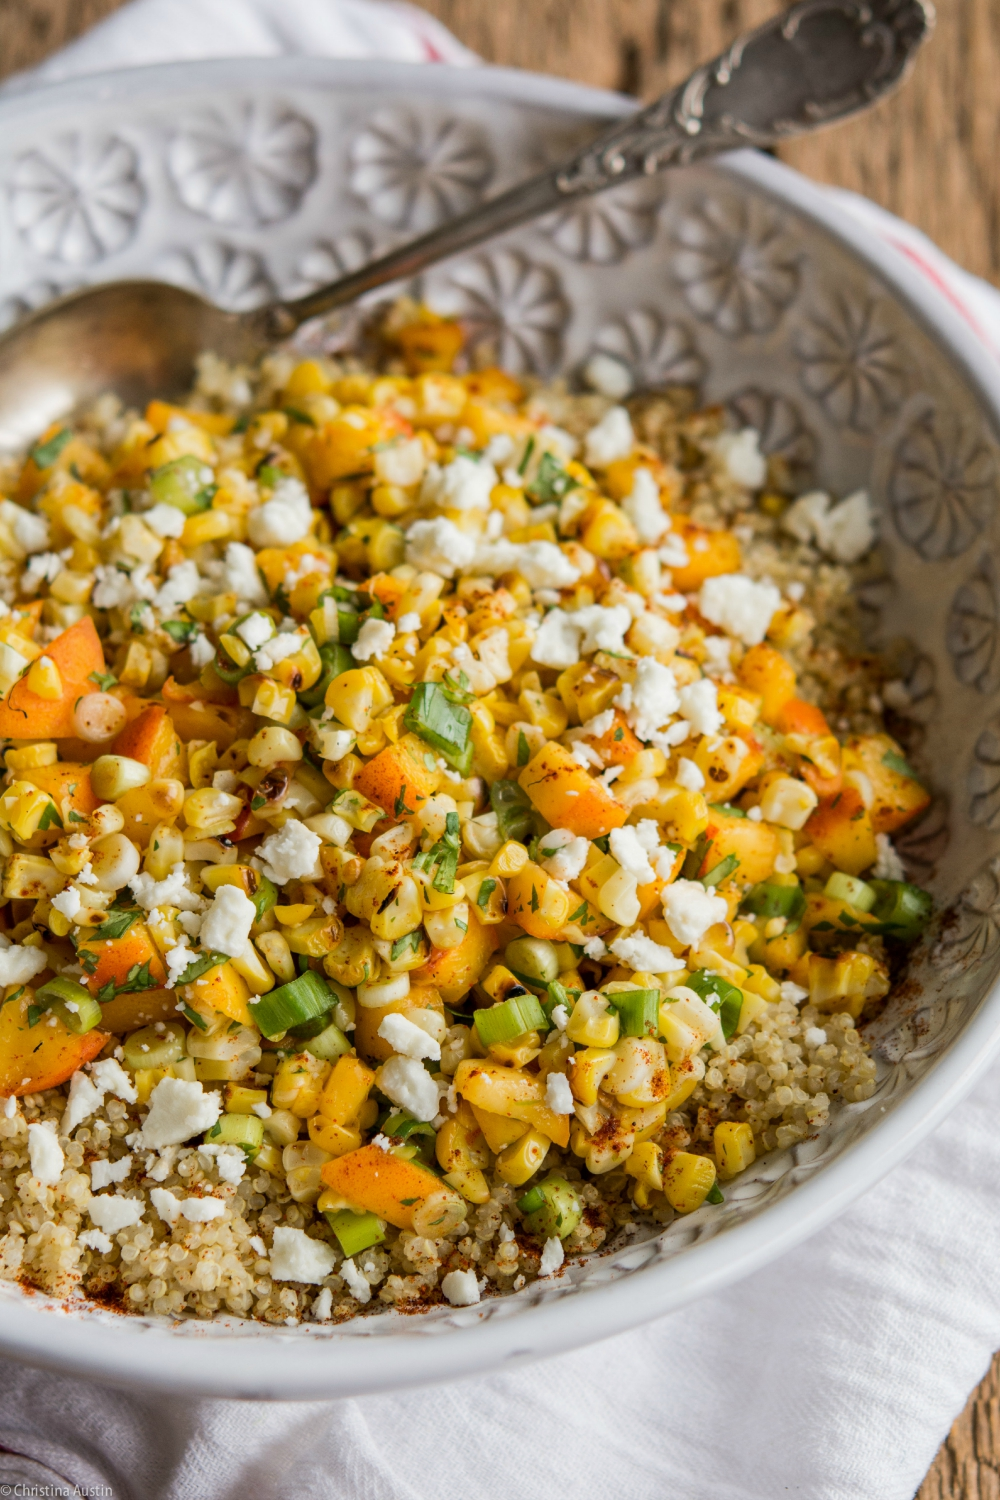 Grilled Sweet Corn and Peach Quinoa Salad - Strawberries For Supper